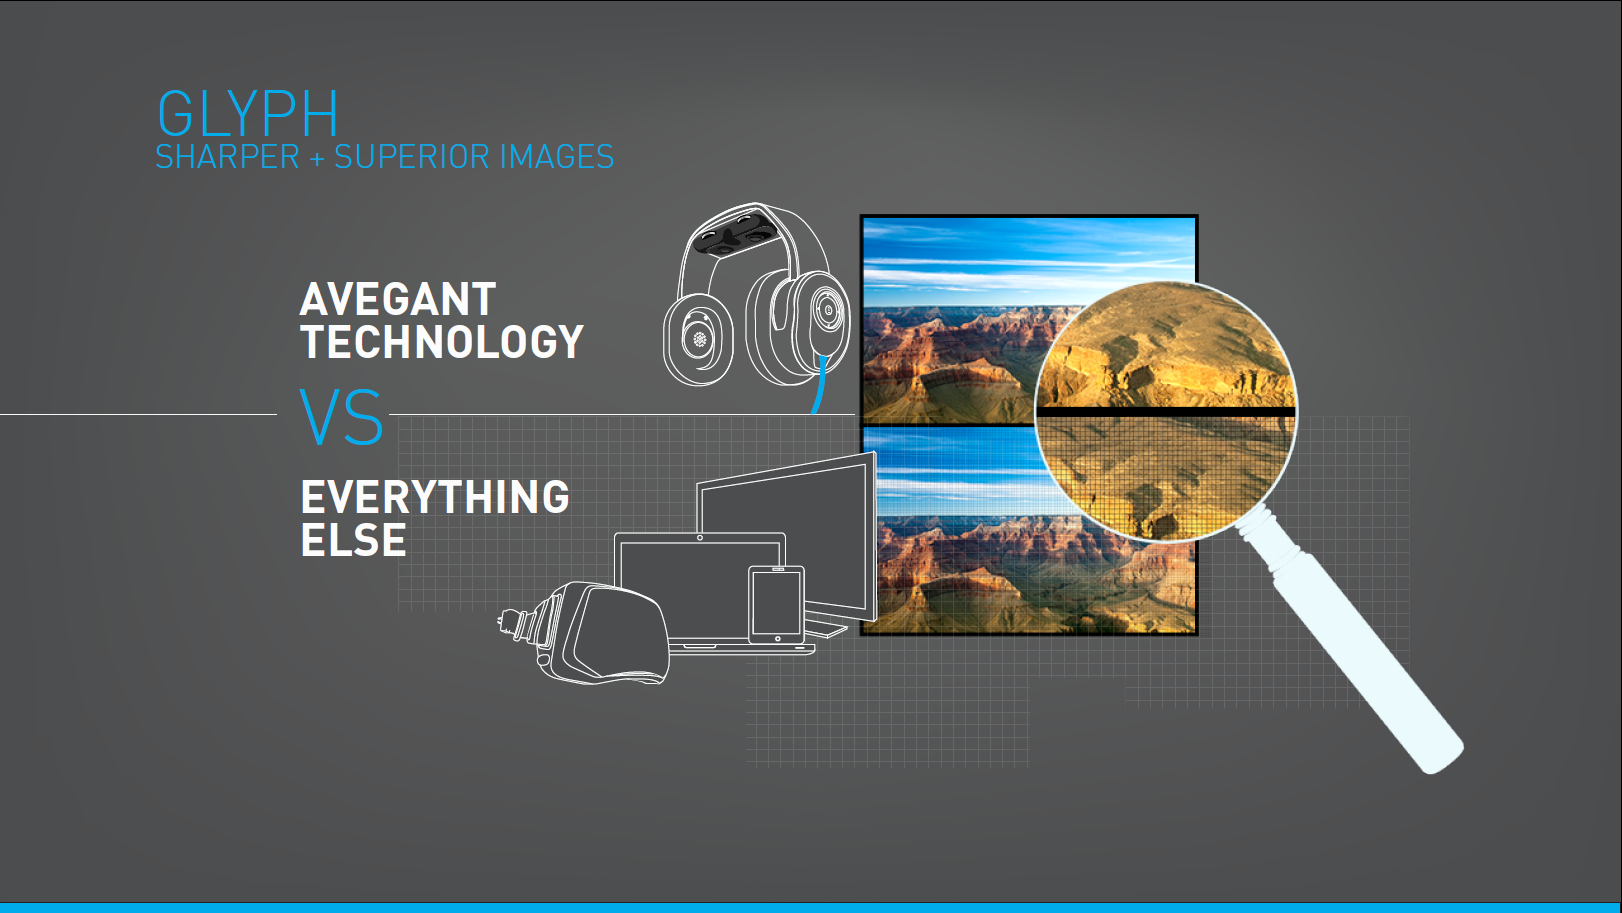 Avegant-Shaper-and-Superior-Images-Infographic